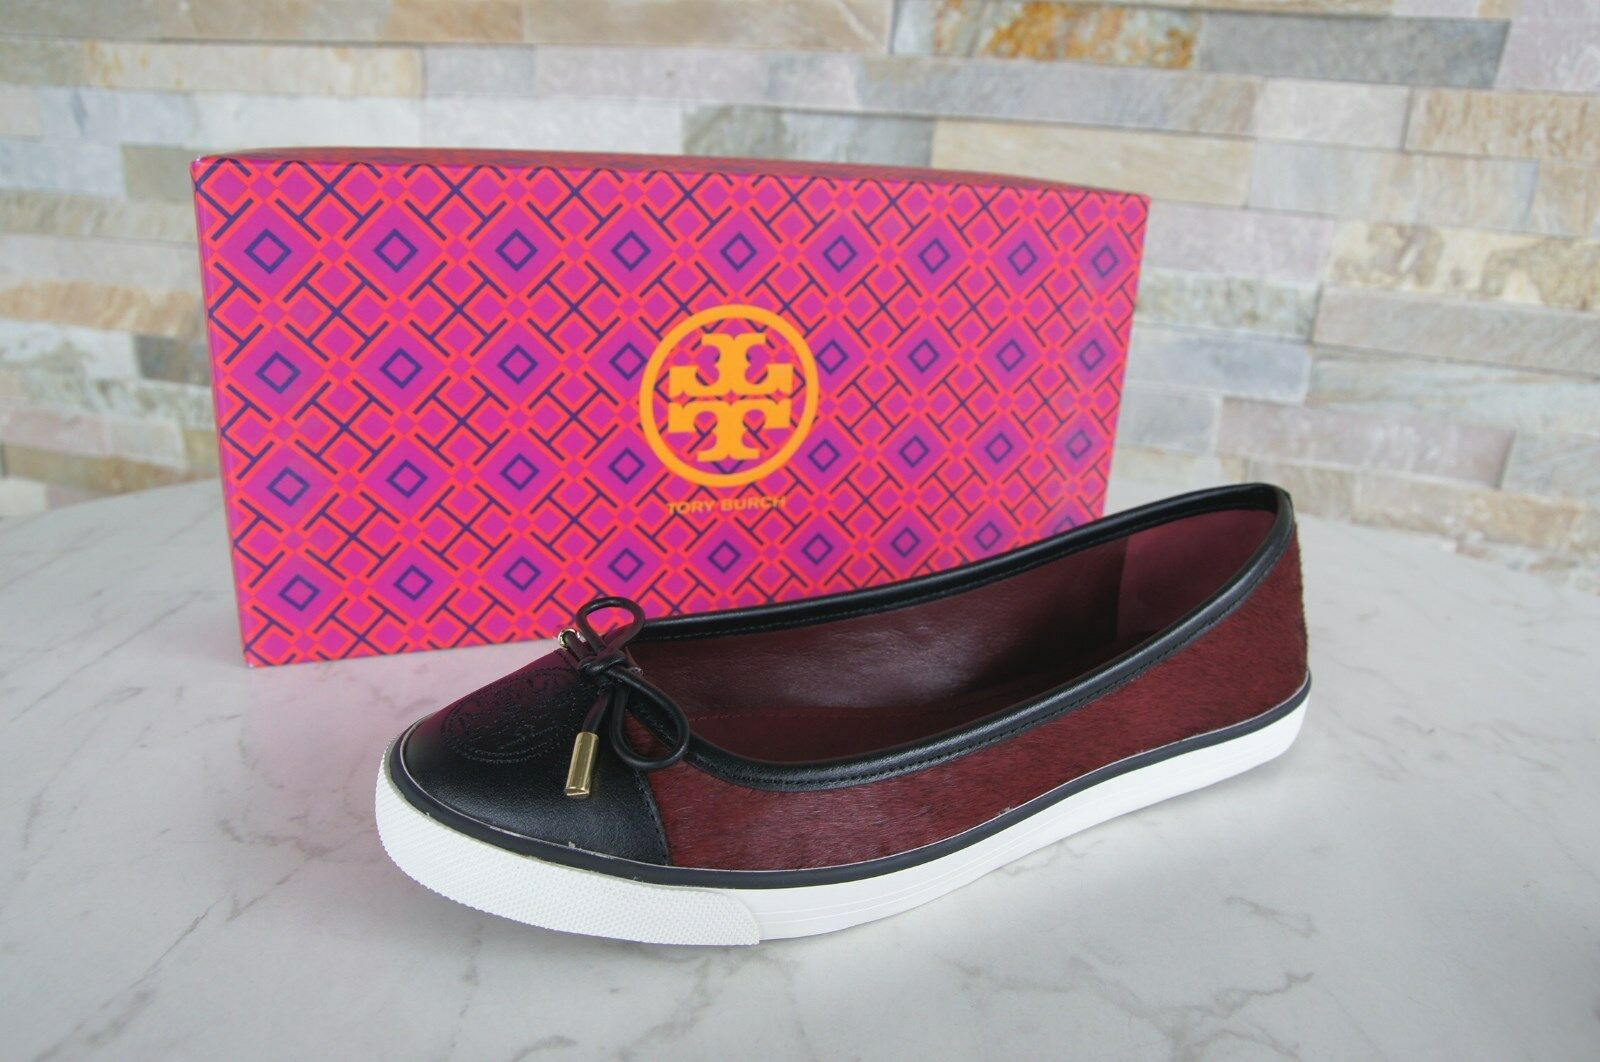 TORY BURCH Slipper Gr 37 7 Ballerinas Slipper BURCH Sneakers Schuhe schuhe Bordeaux NEU 45a8a4